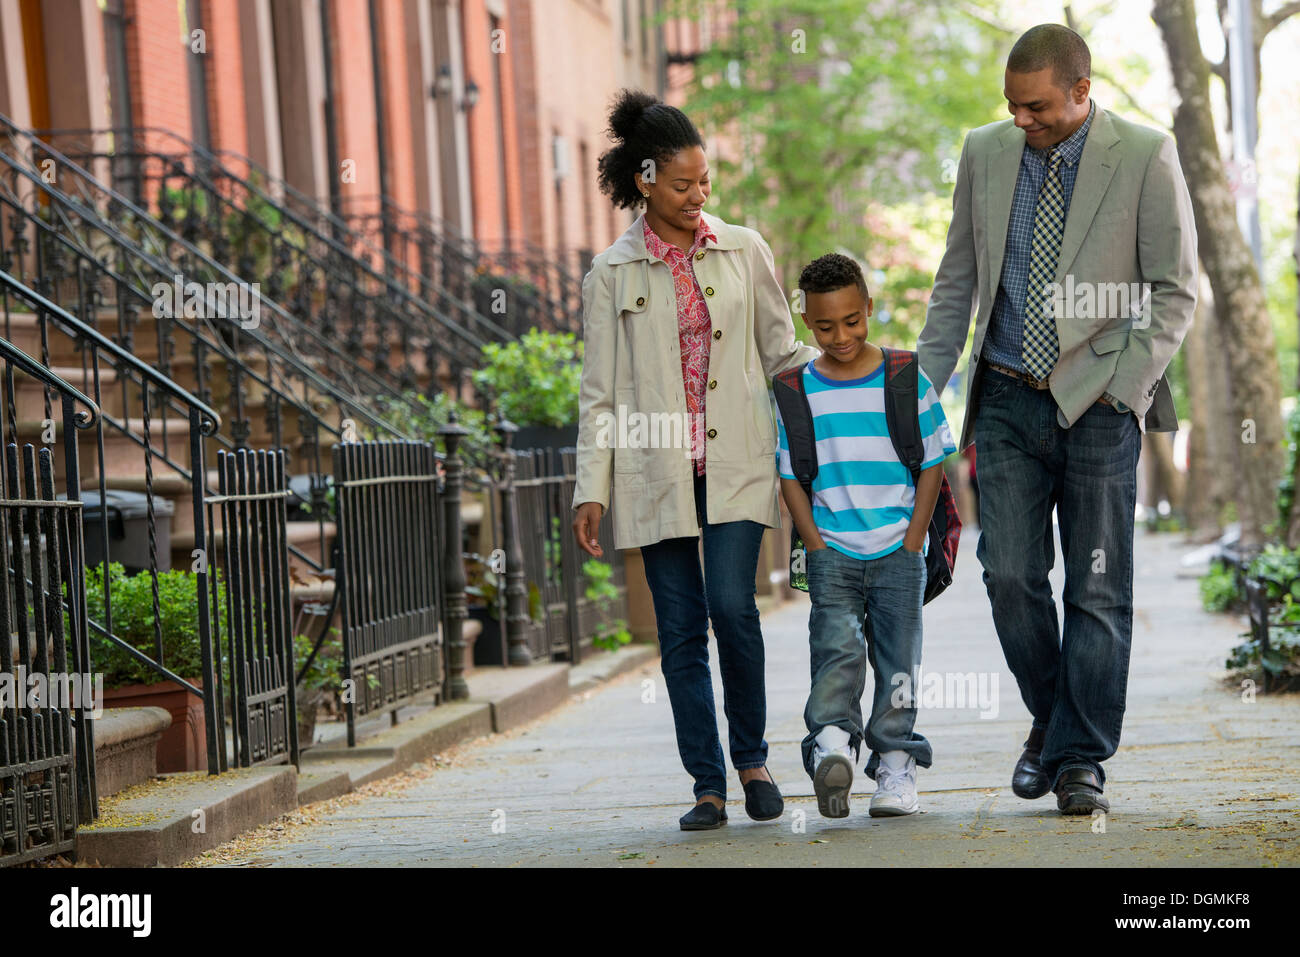 A family outdoors in the city. Two parents and a young boy walking together. Stock Photo